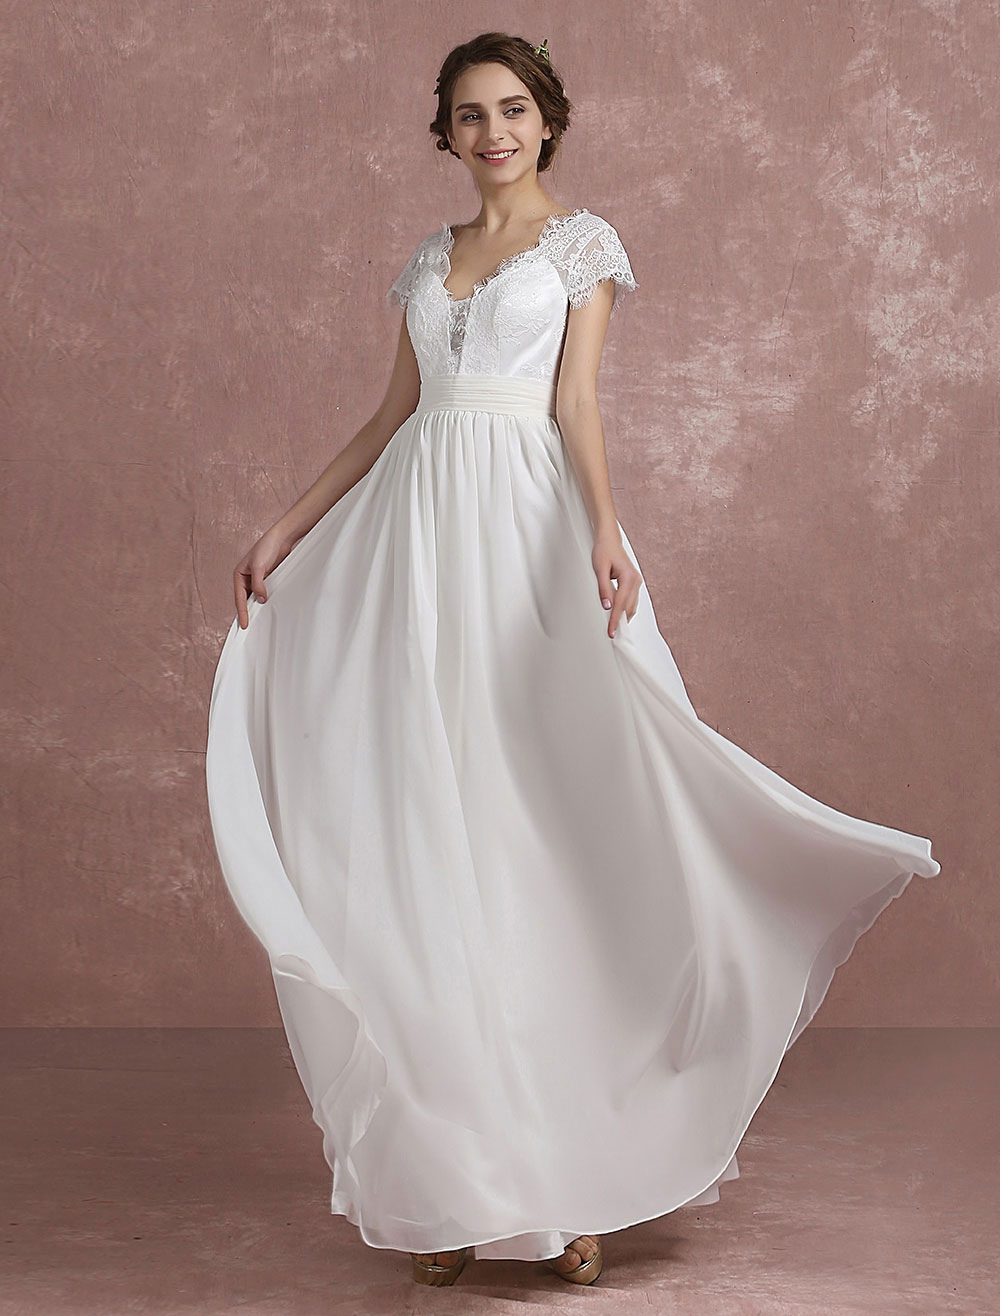 Summer Wedding Dresses 2020 Beach Lace Chiffon